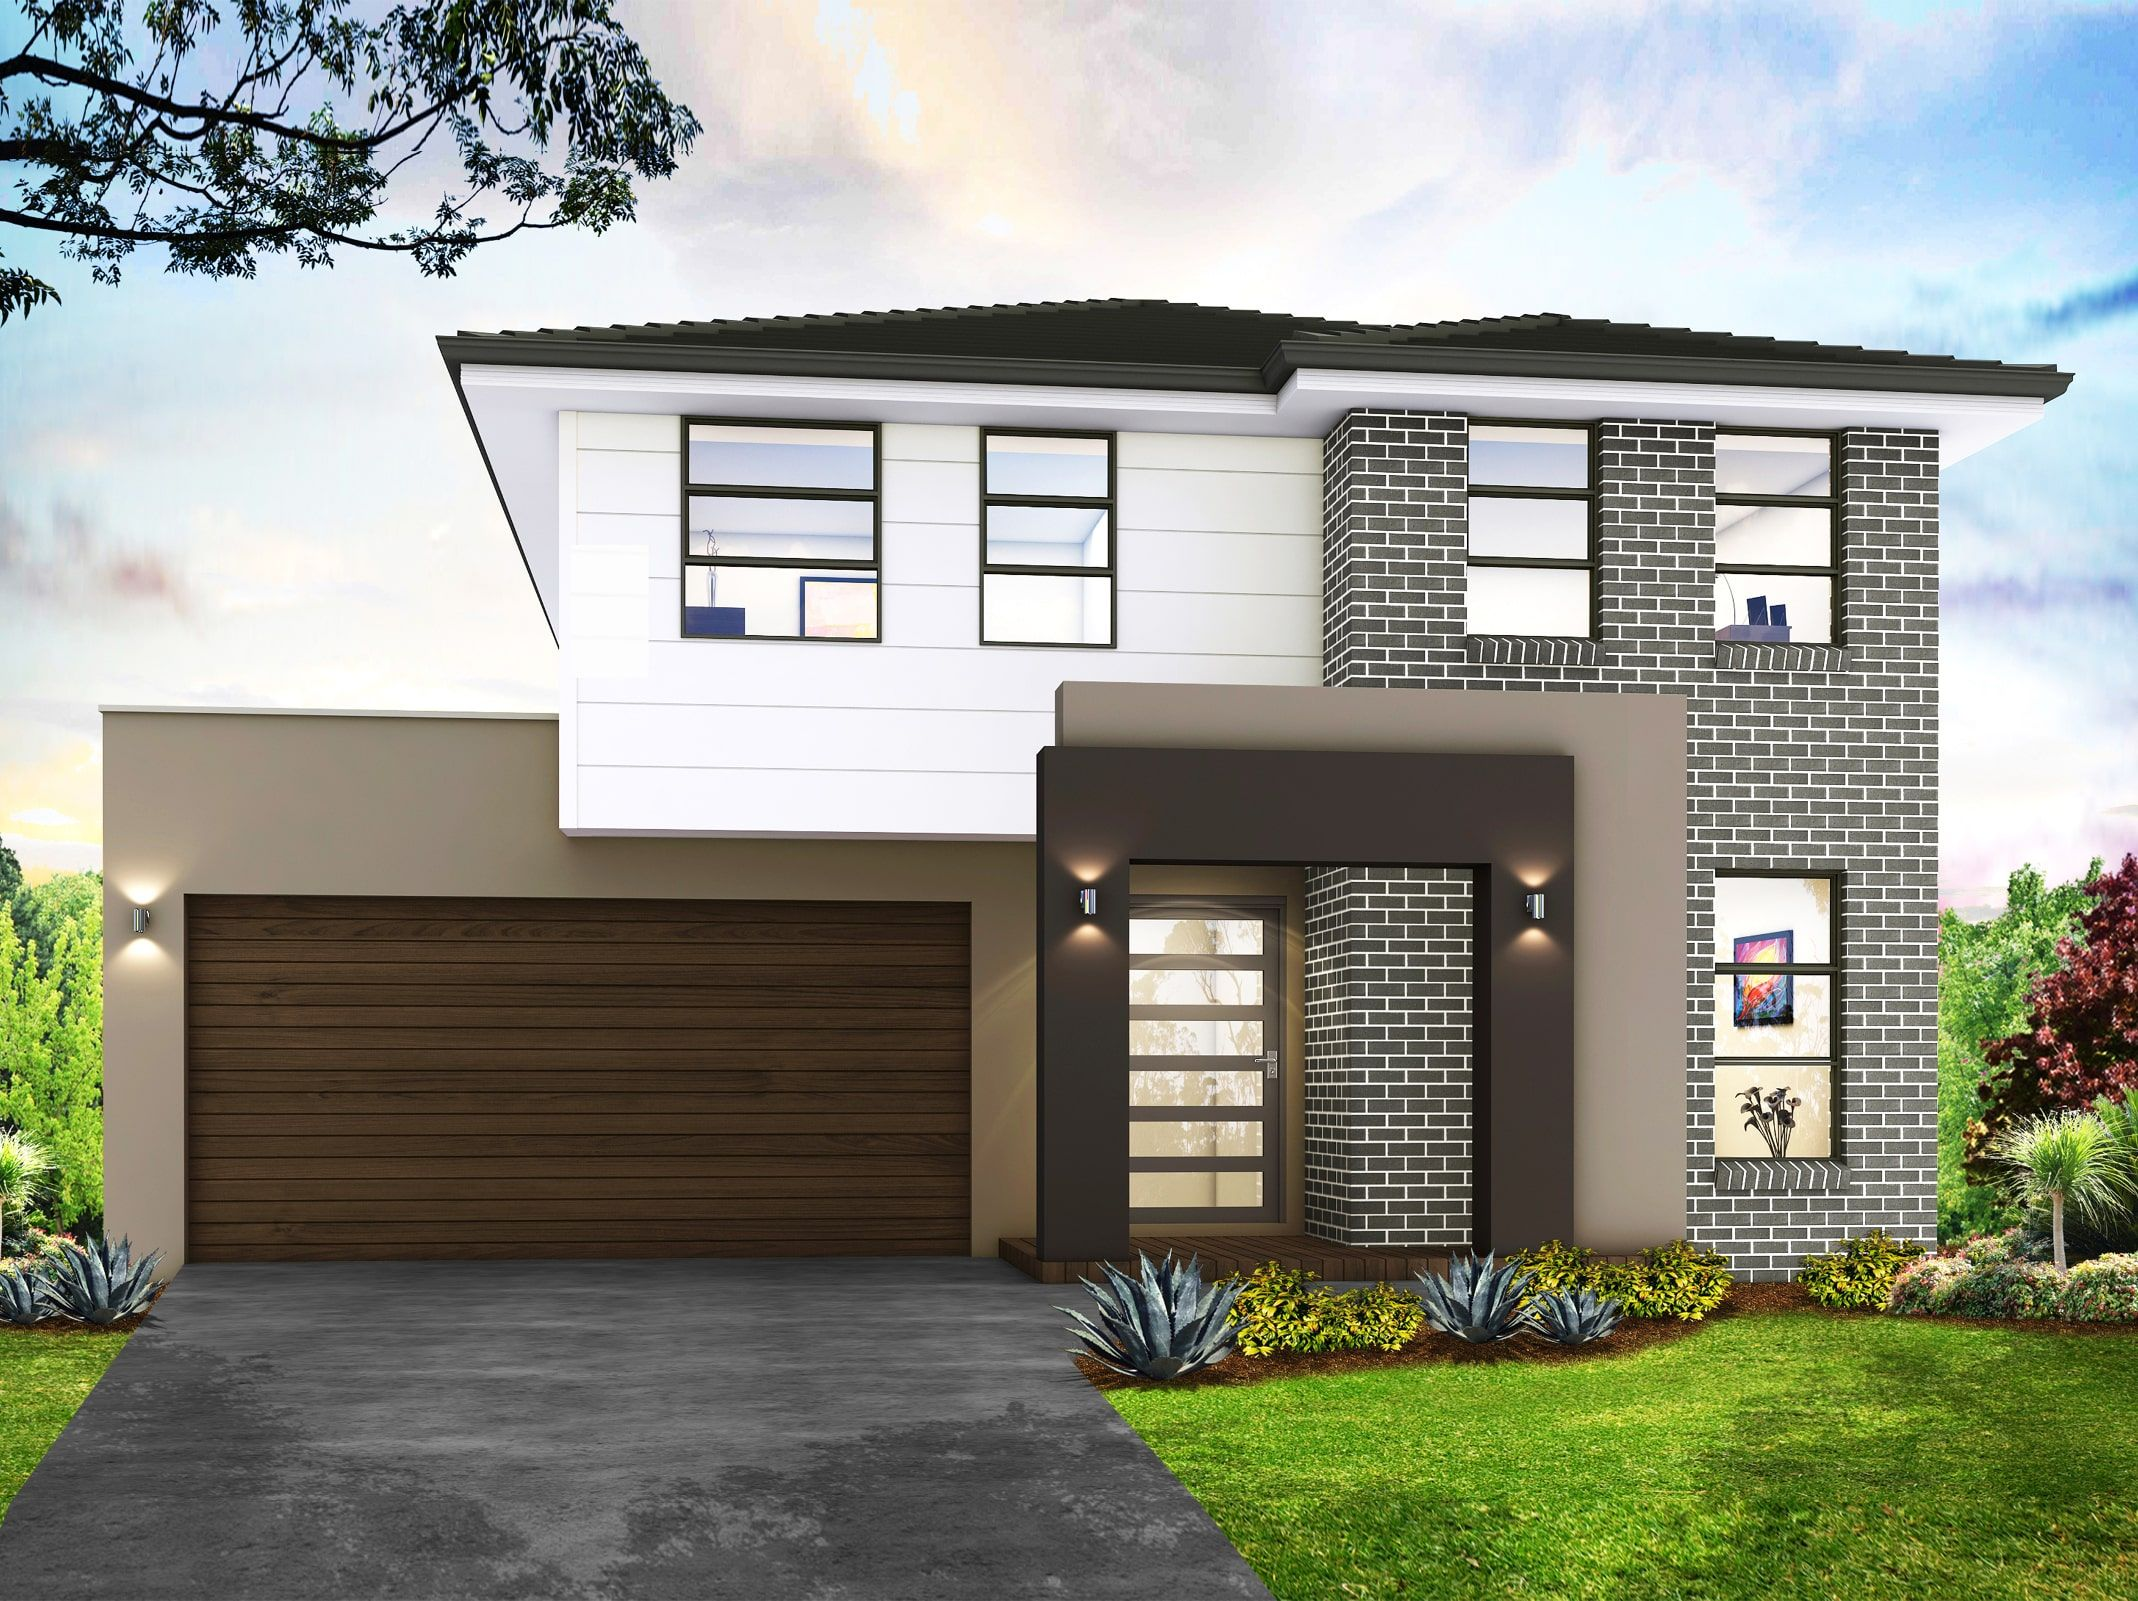 Jamieson 27 Home Design Better Built Homes House Design House Plans Home